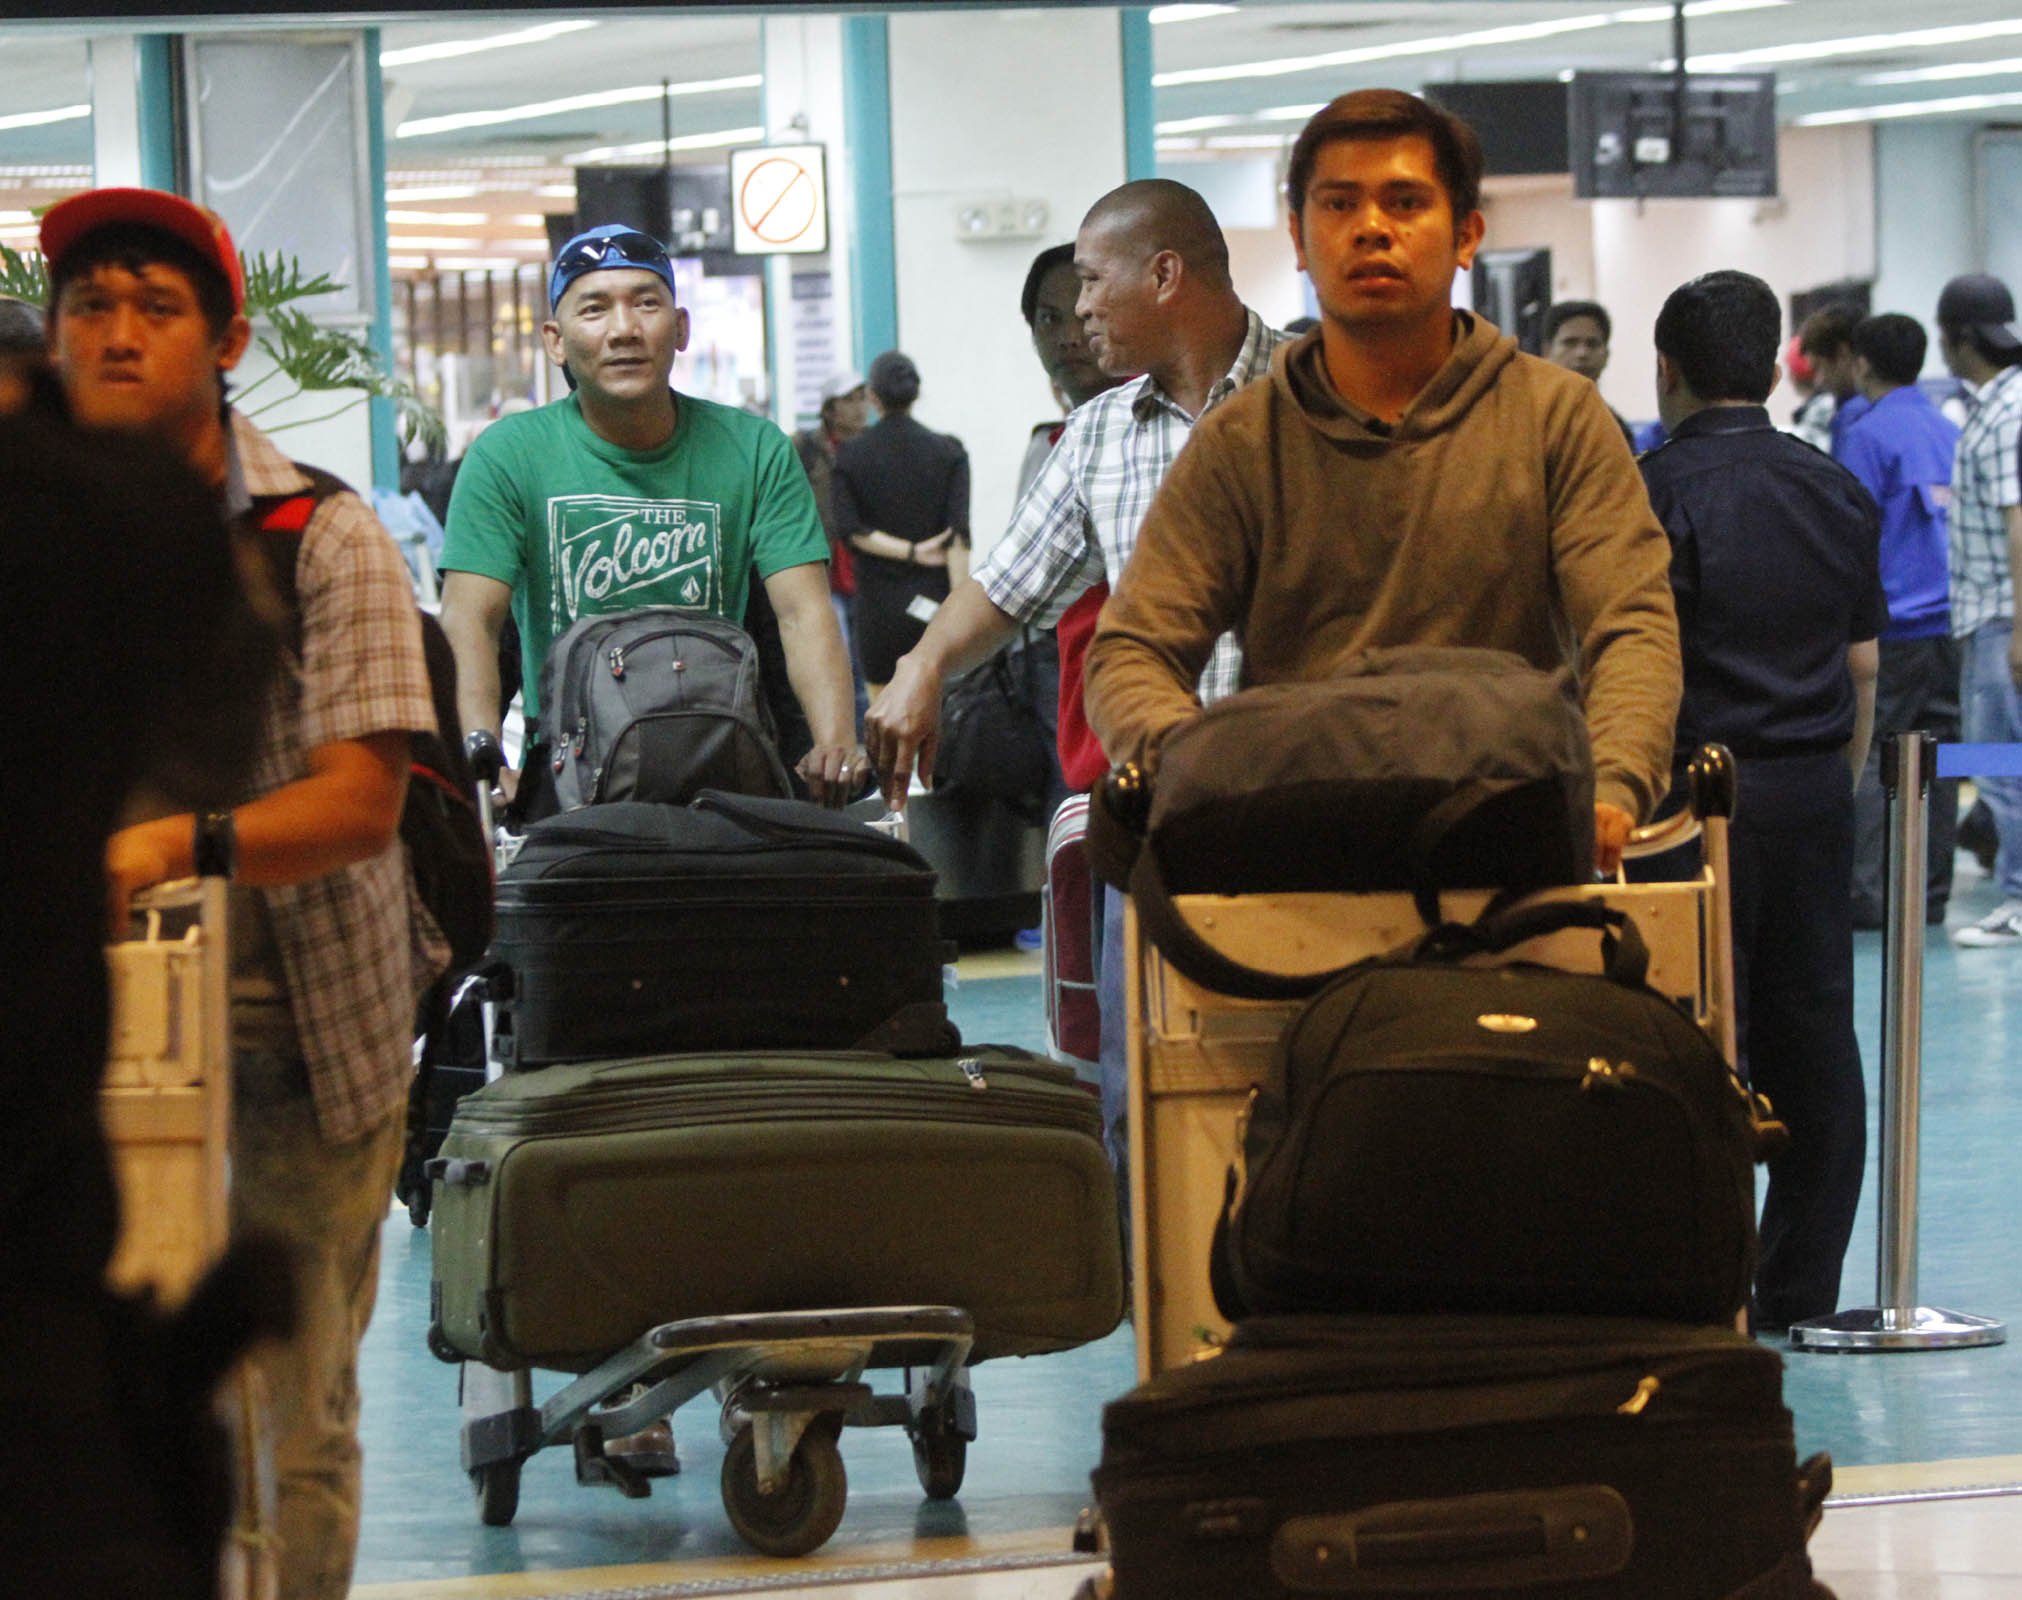 The 65 overseas Filipino workers (OFW) repatriated from Libya thru the effort of the Philippine government arrive at the Ninoy Aquino International Airport (NAIA) on Monday (June 23, 2014) in Pasay City. (PNA photos by Avito C. Dalan)